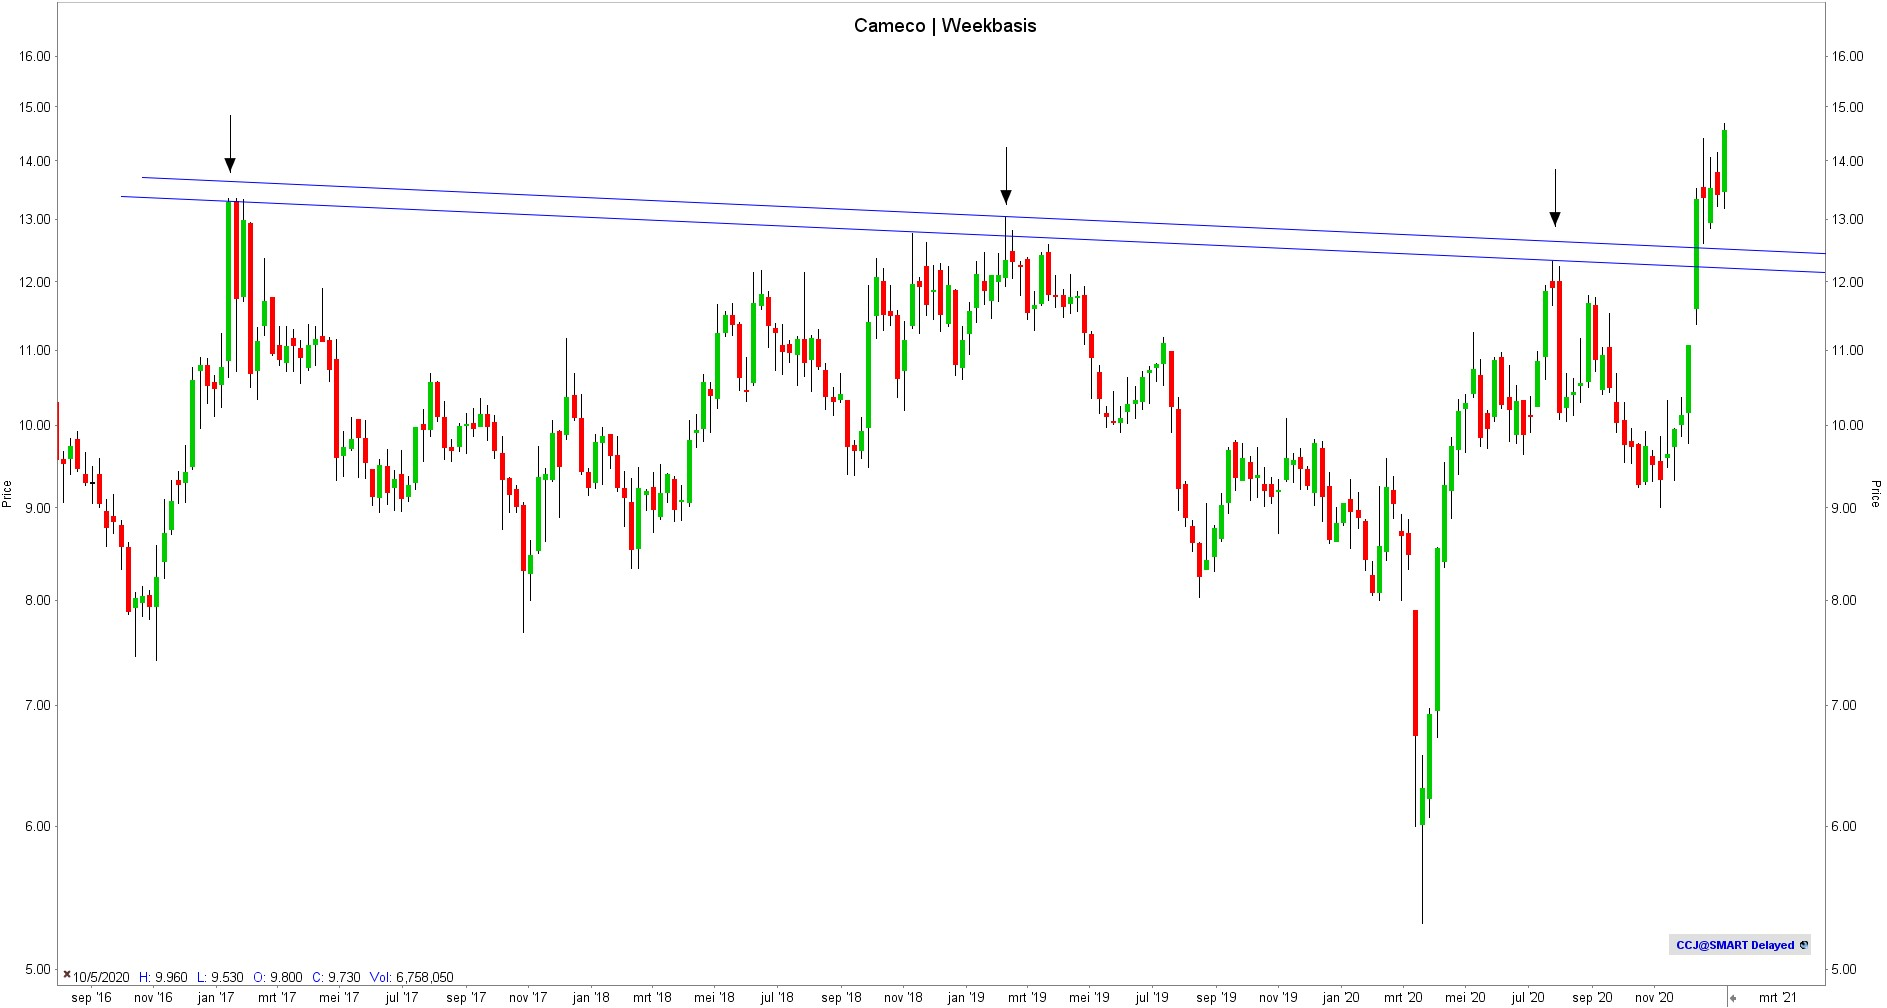 Cameco Weekly - TA